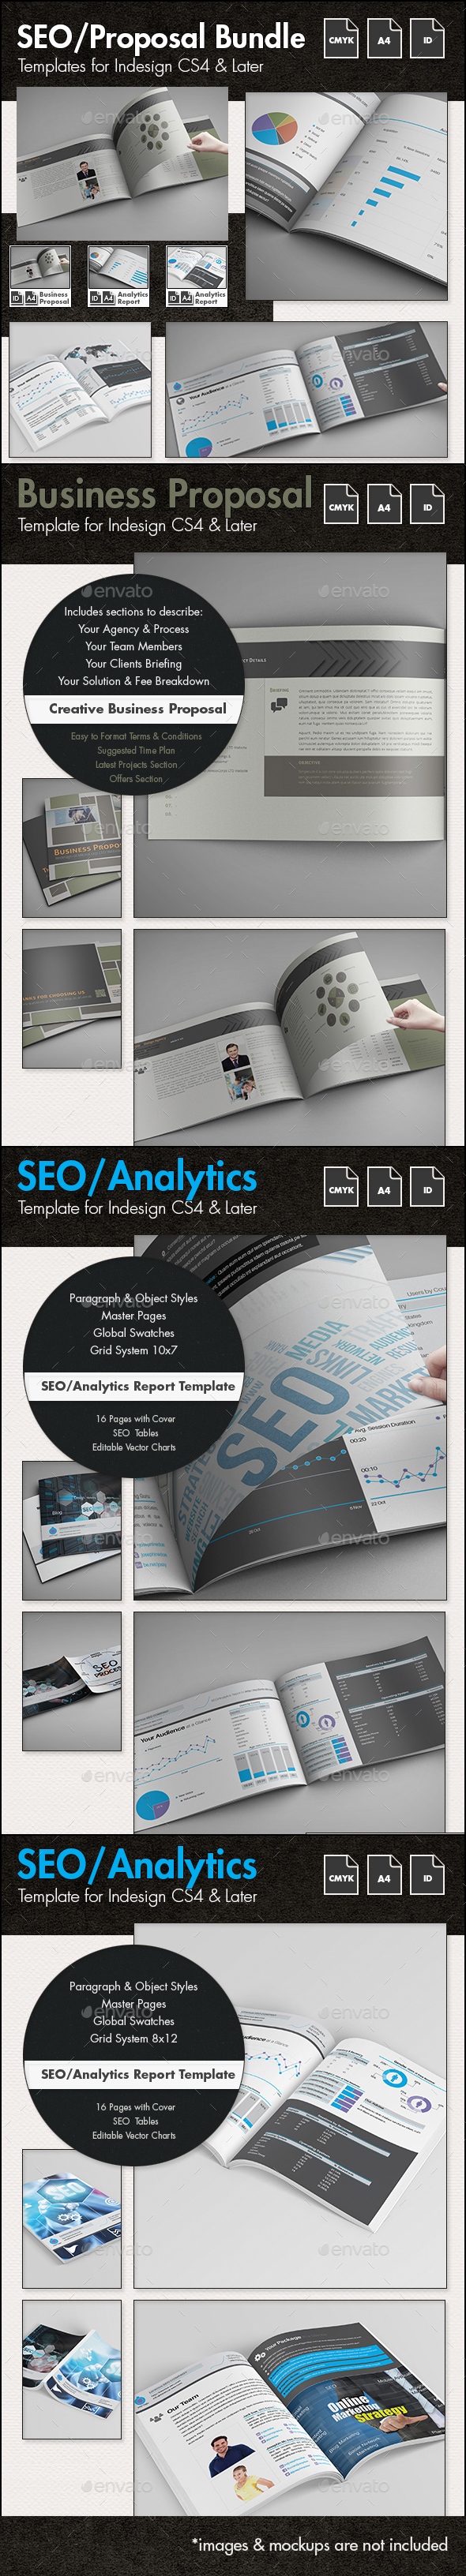 Seo Report Graphics, Designs & Templates from GraphicRiver